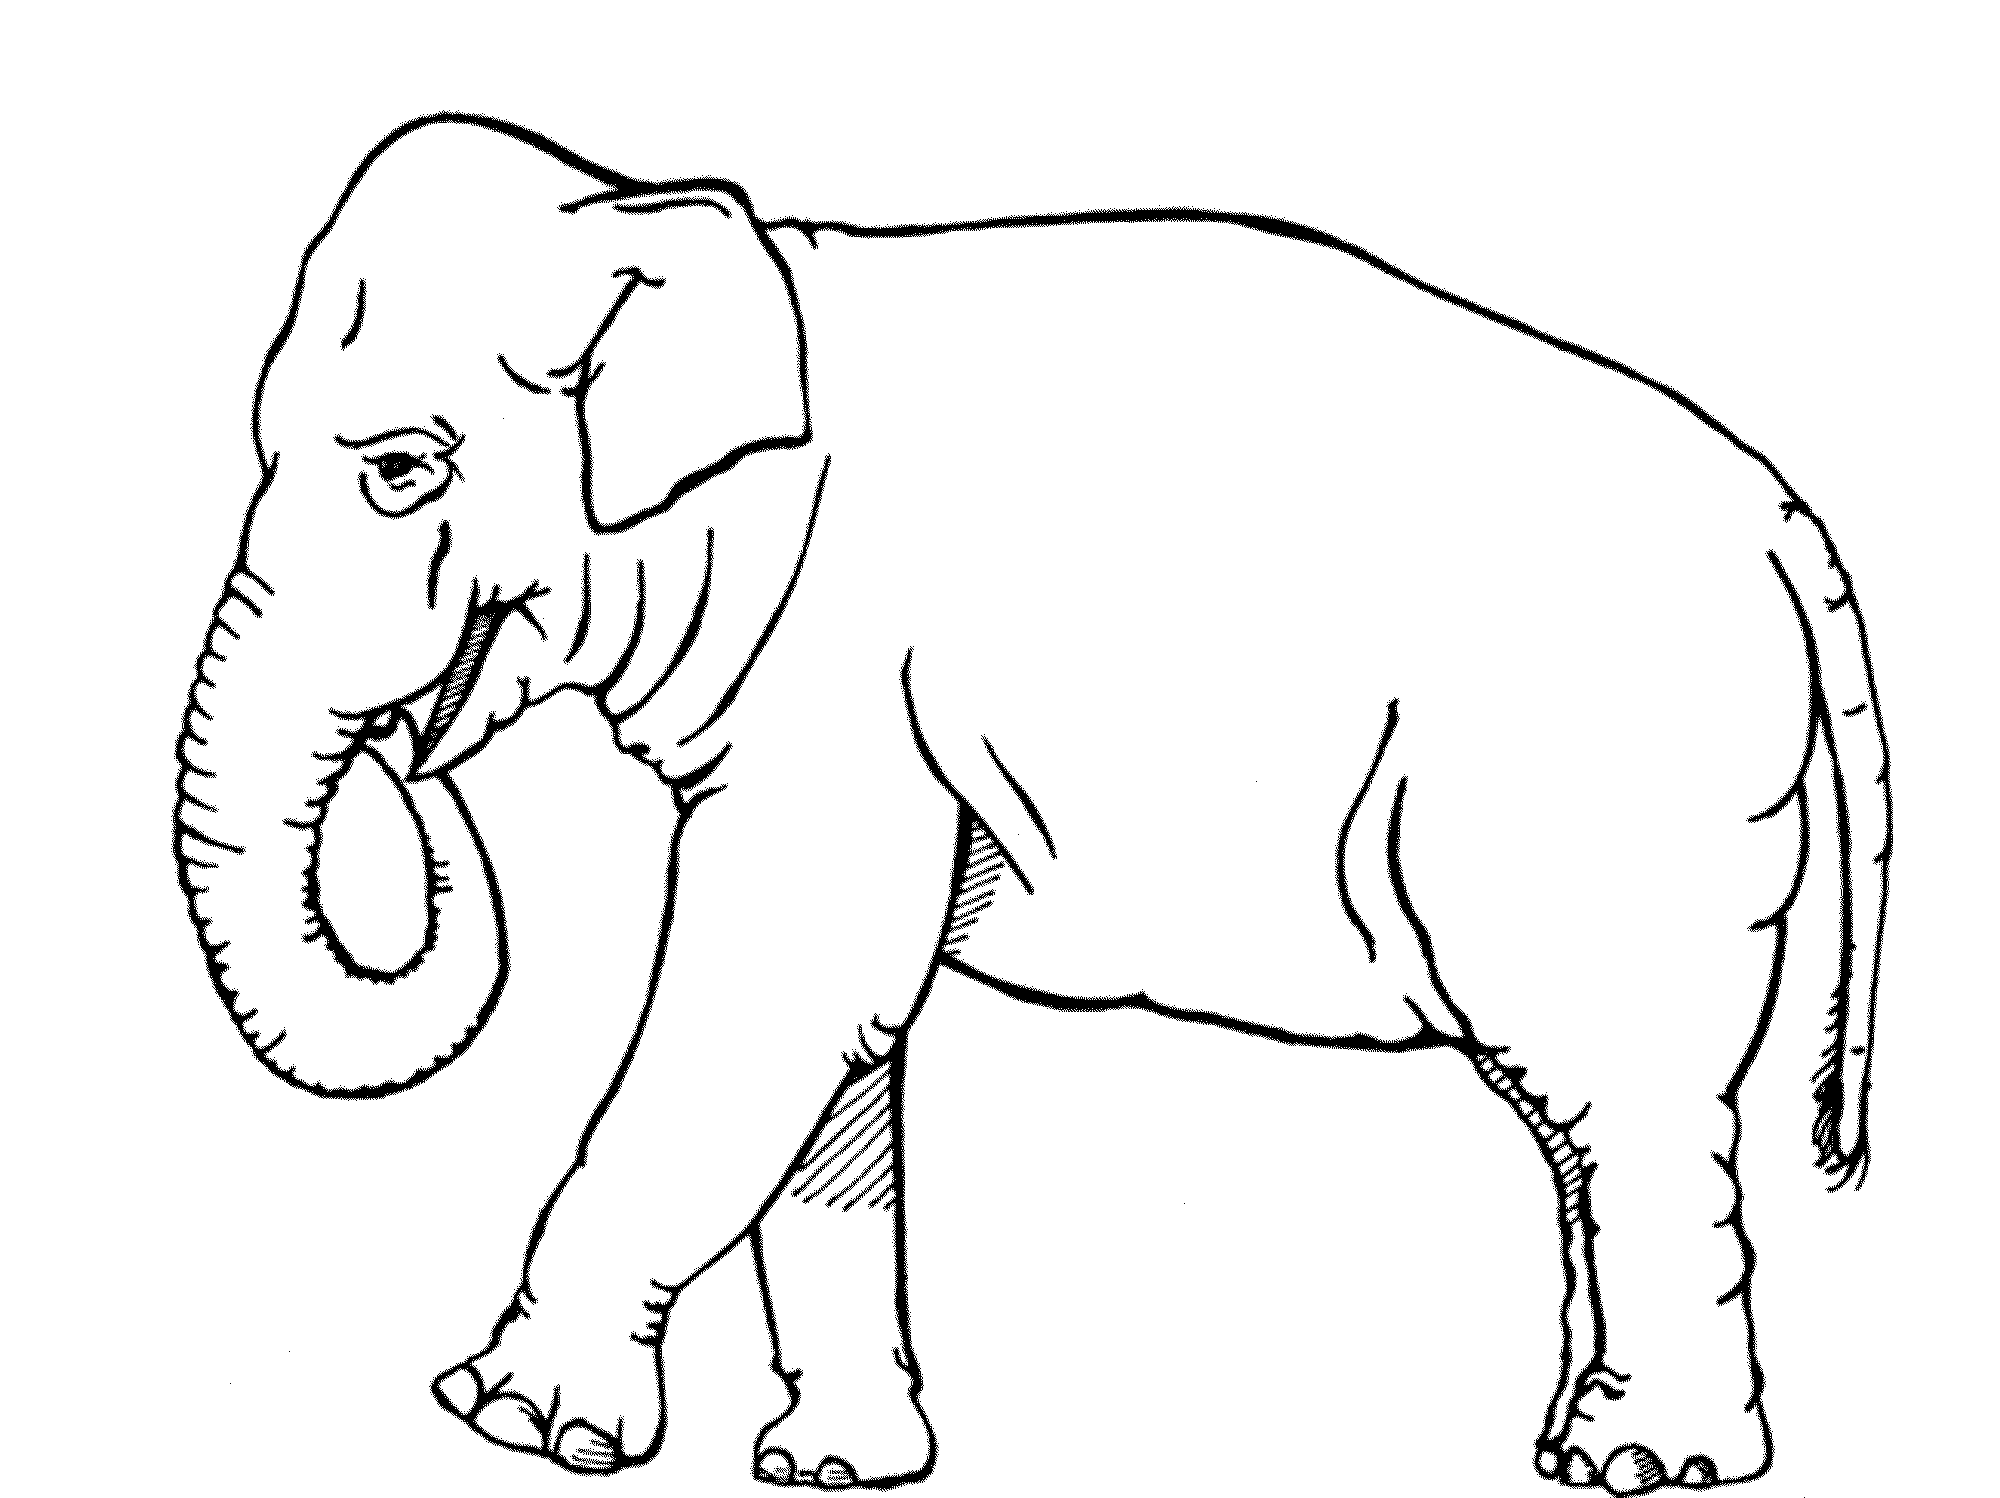 colouring pages of elephant free printable elephant coloring pages for kids colouring elephant pages of